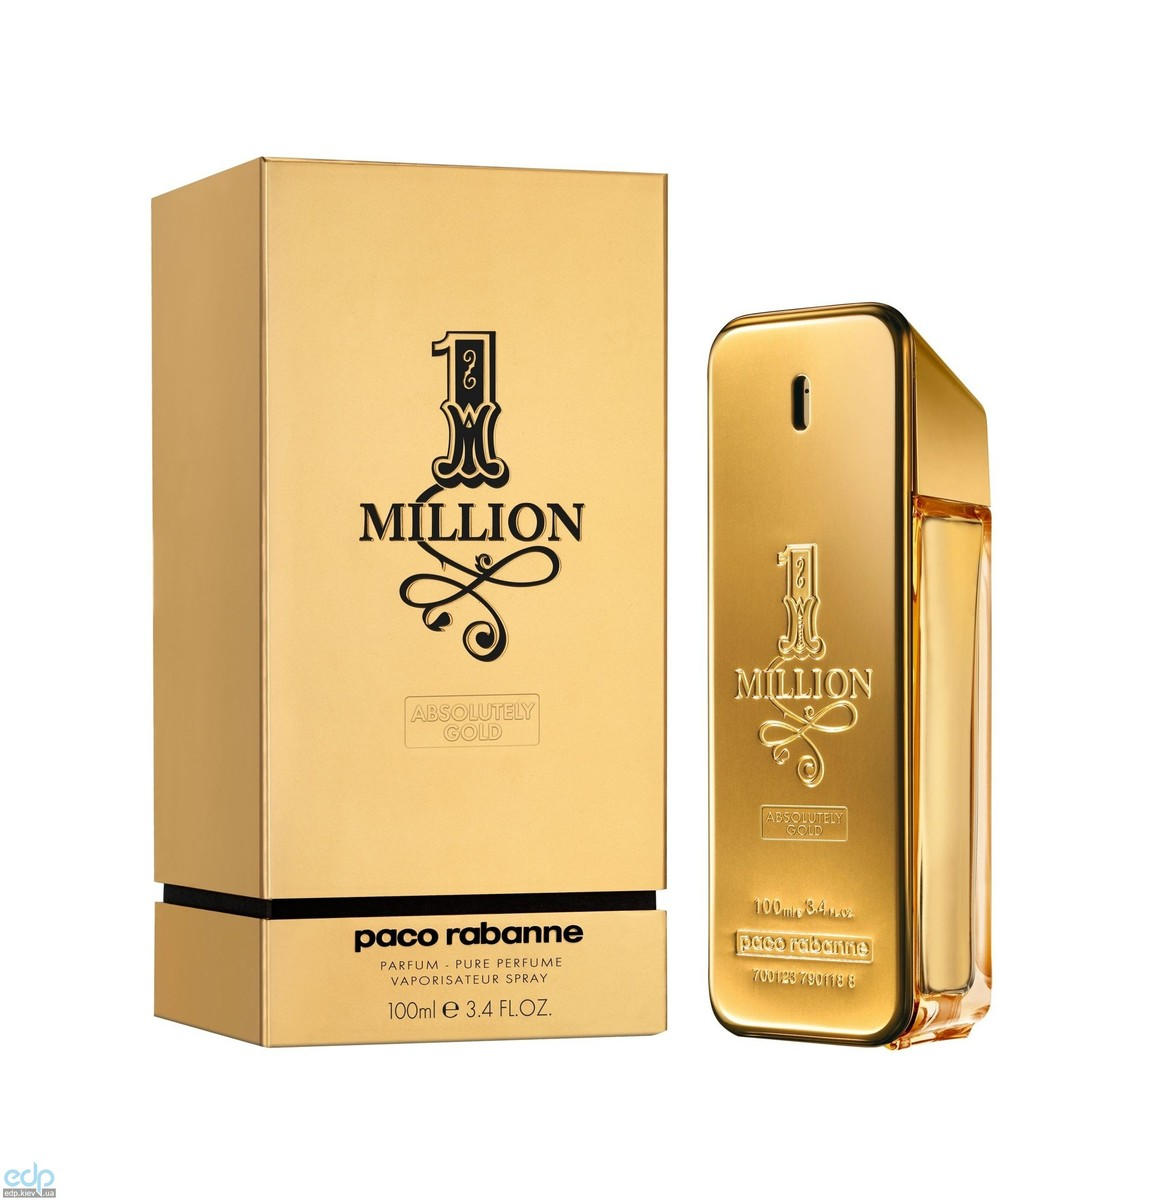 Paco Rabanne 1 Million Absolutely Gold - парфюмированная вода - 100 ml